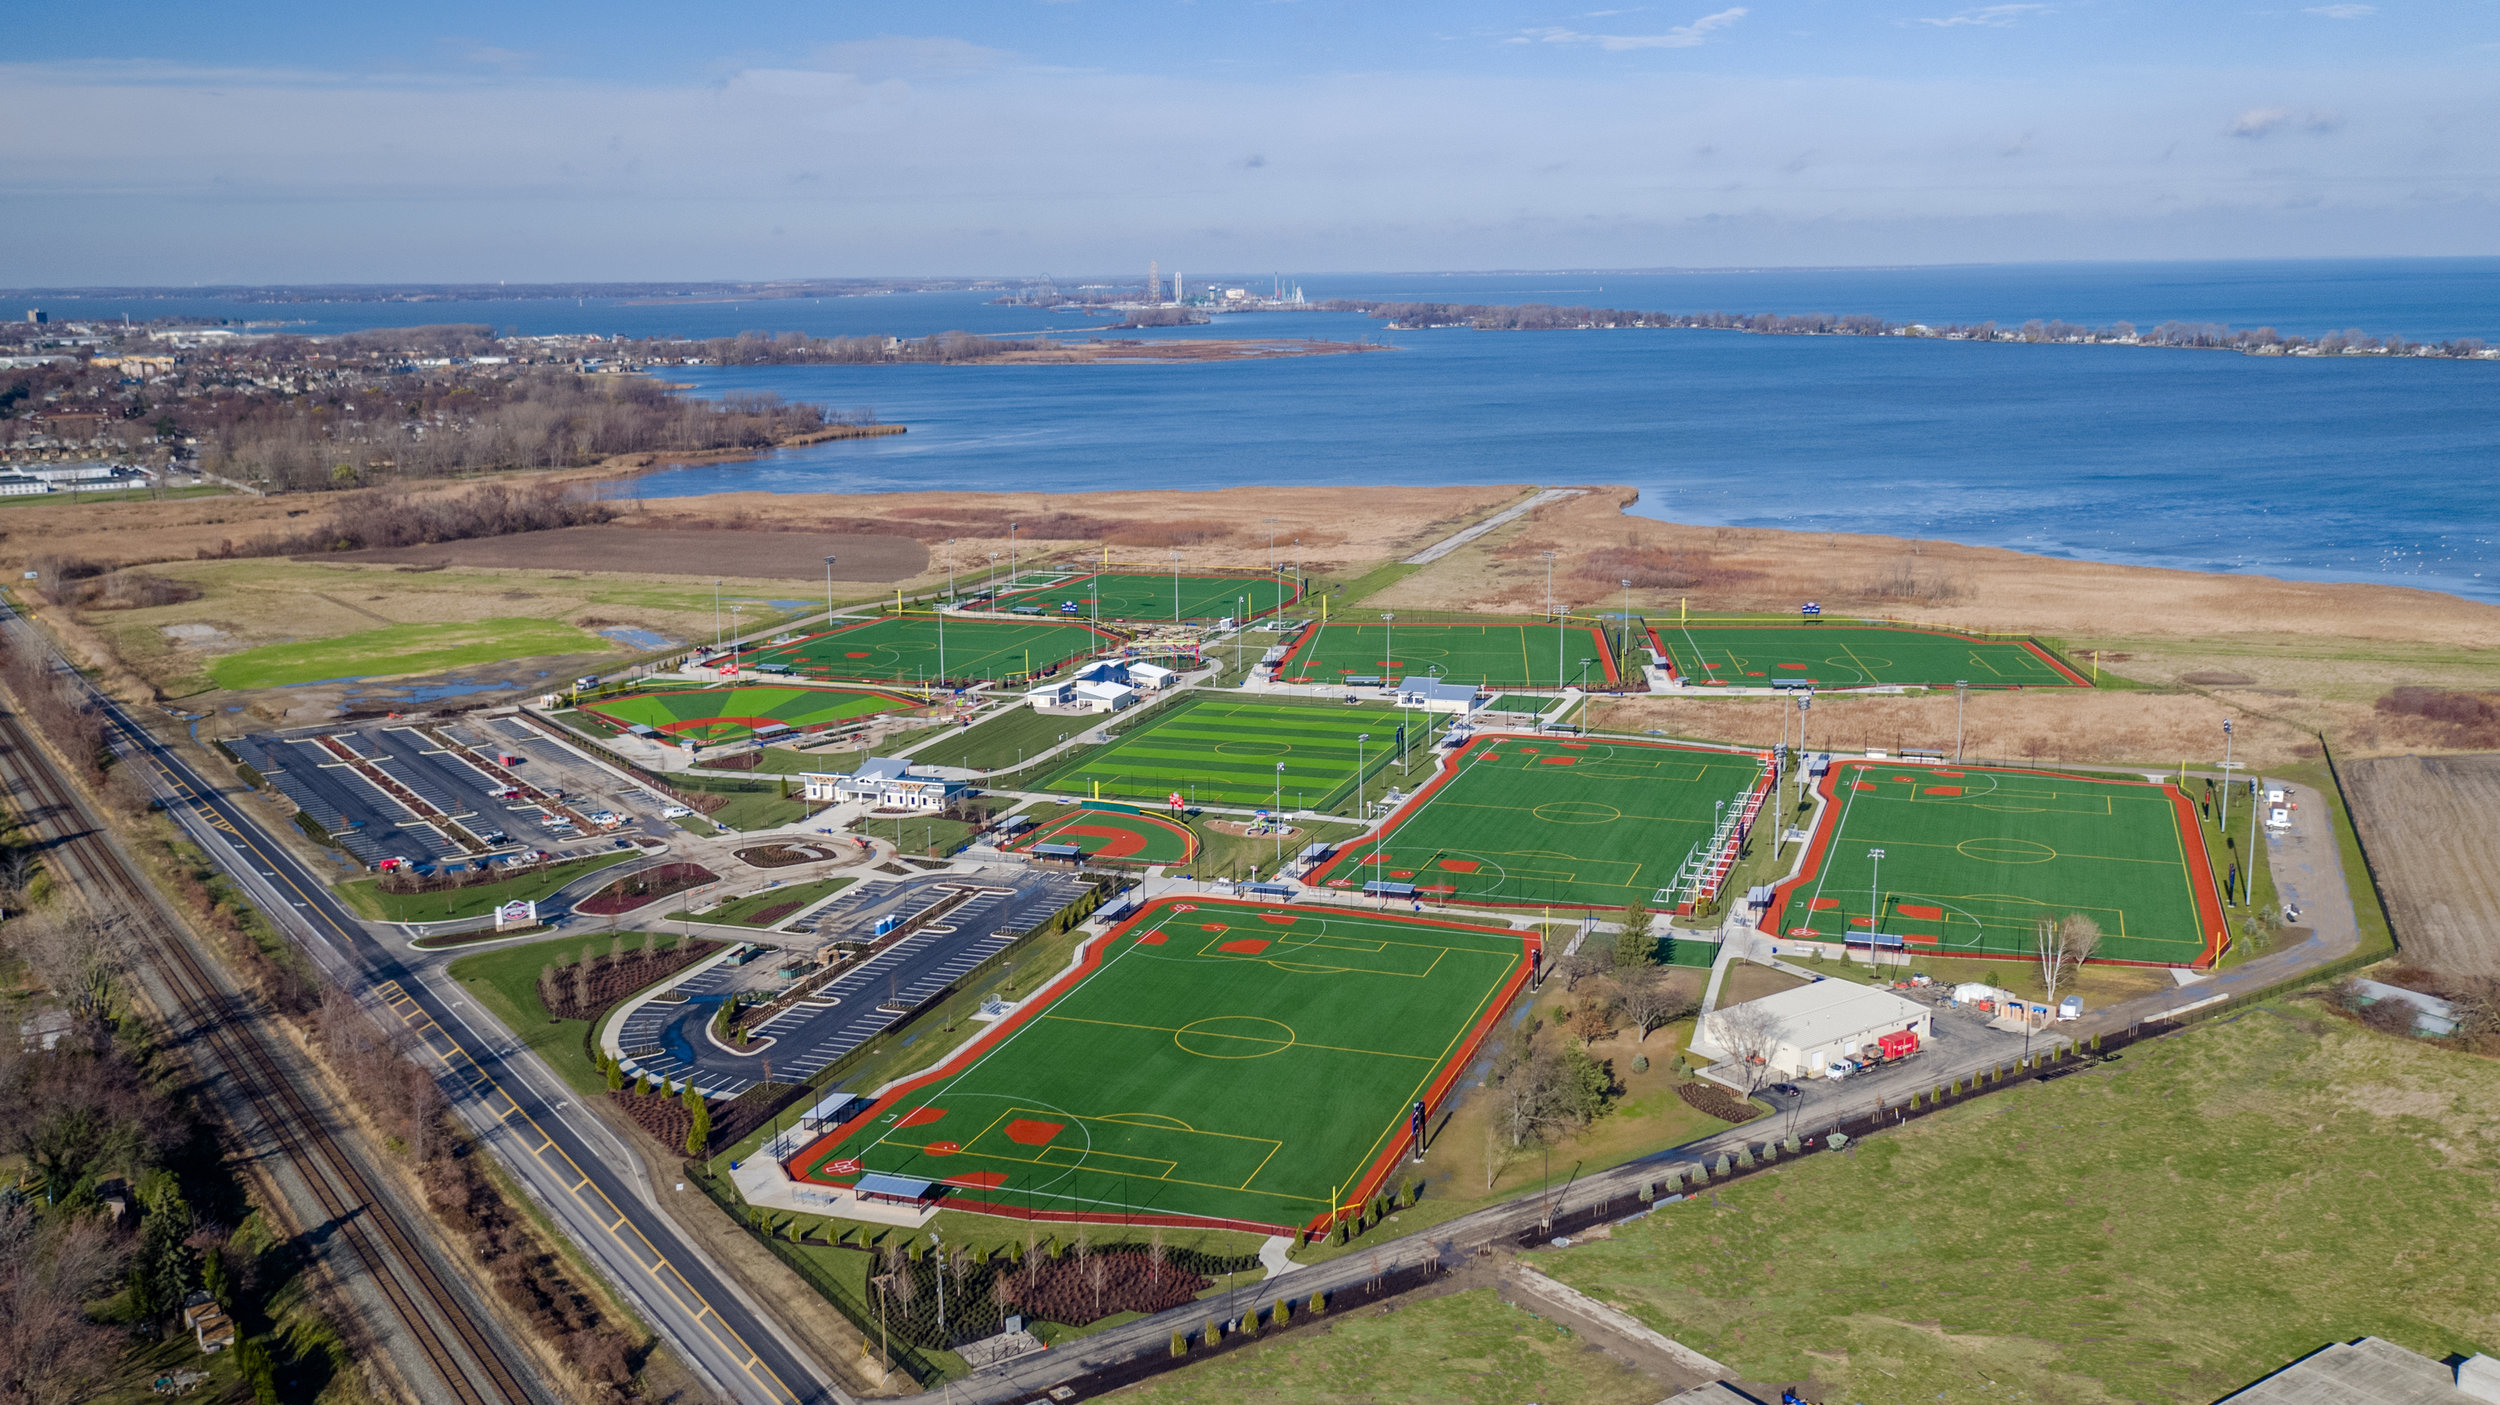 The all NEW Sports Force Parks at Cedar Point Sports Center in Sandusky, Ohio